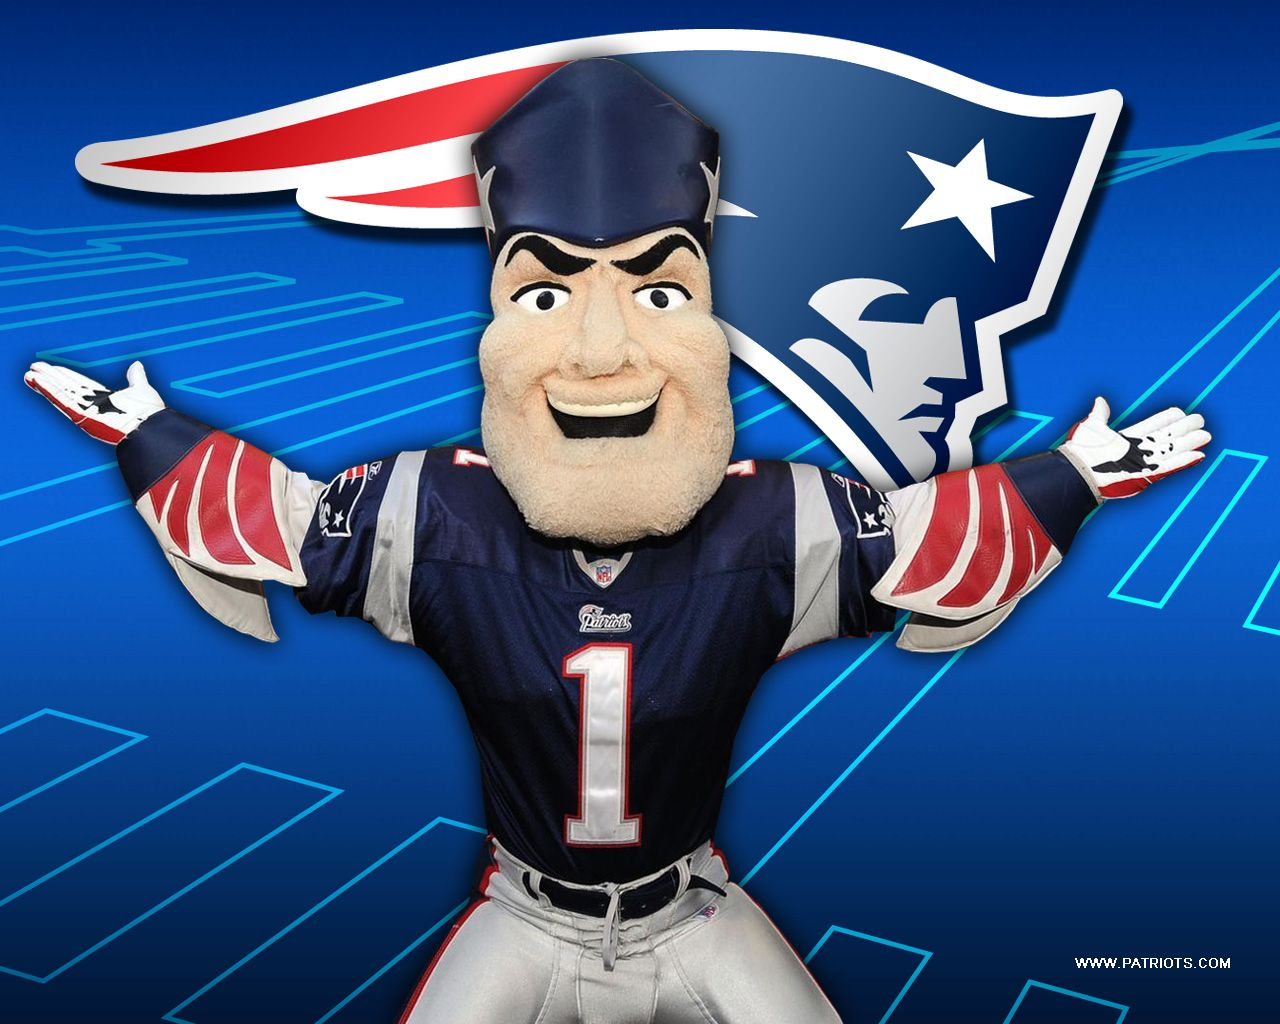 Pat Patriot New England Patriots Mascot Wallpaper 1280 X 1024 New England Patriots Wallpaper New England Patriots New England Patriots Football